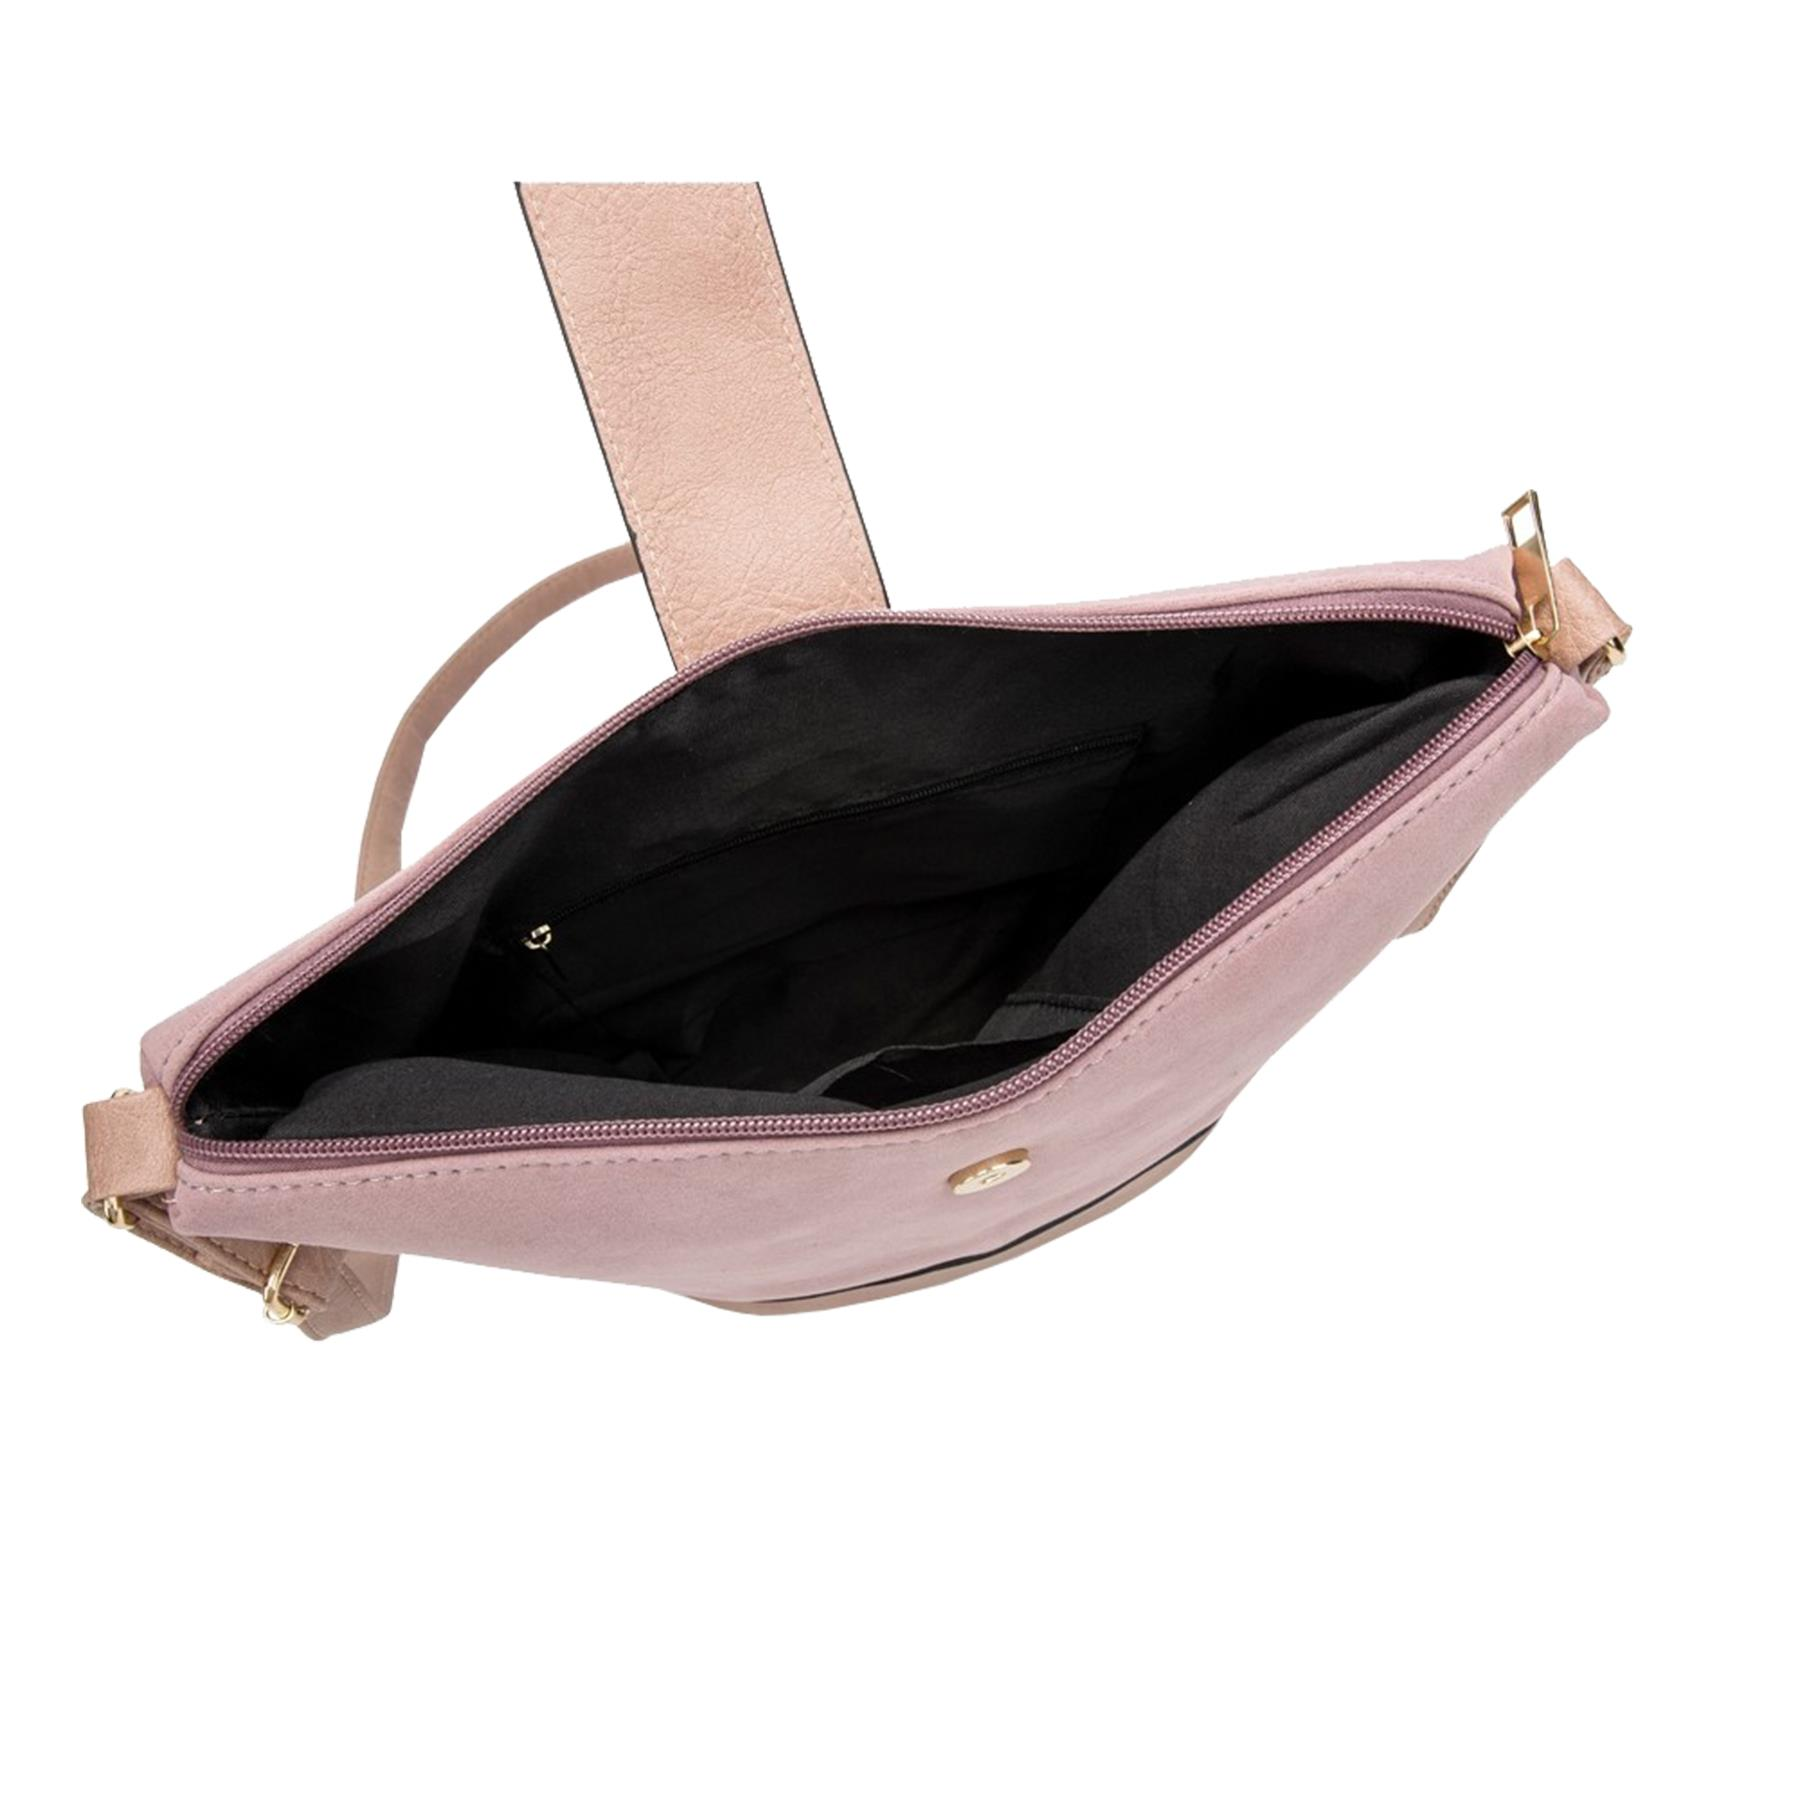 New-Ladies-Two-Toned-Faux-Leather-Fashion-Shoulder-Cross-Body-Bag thumbnail 10